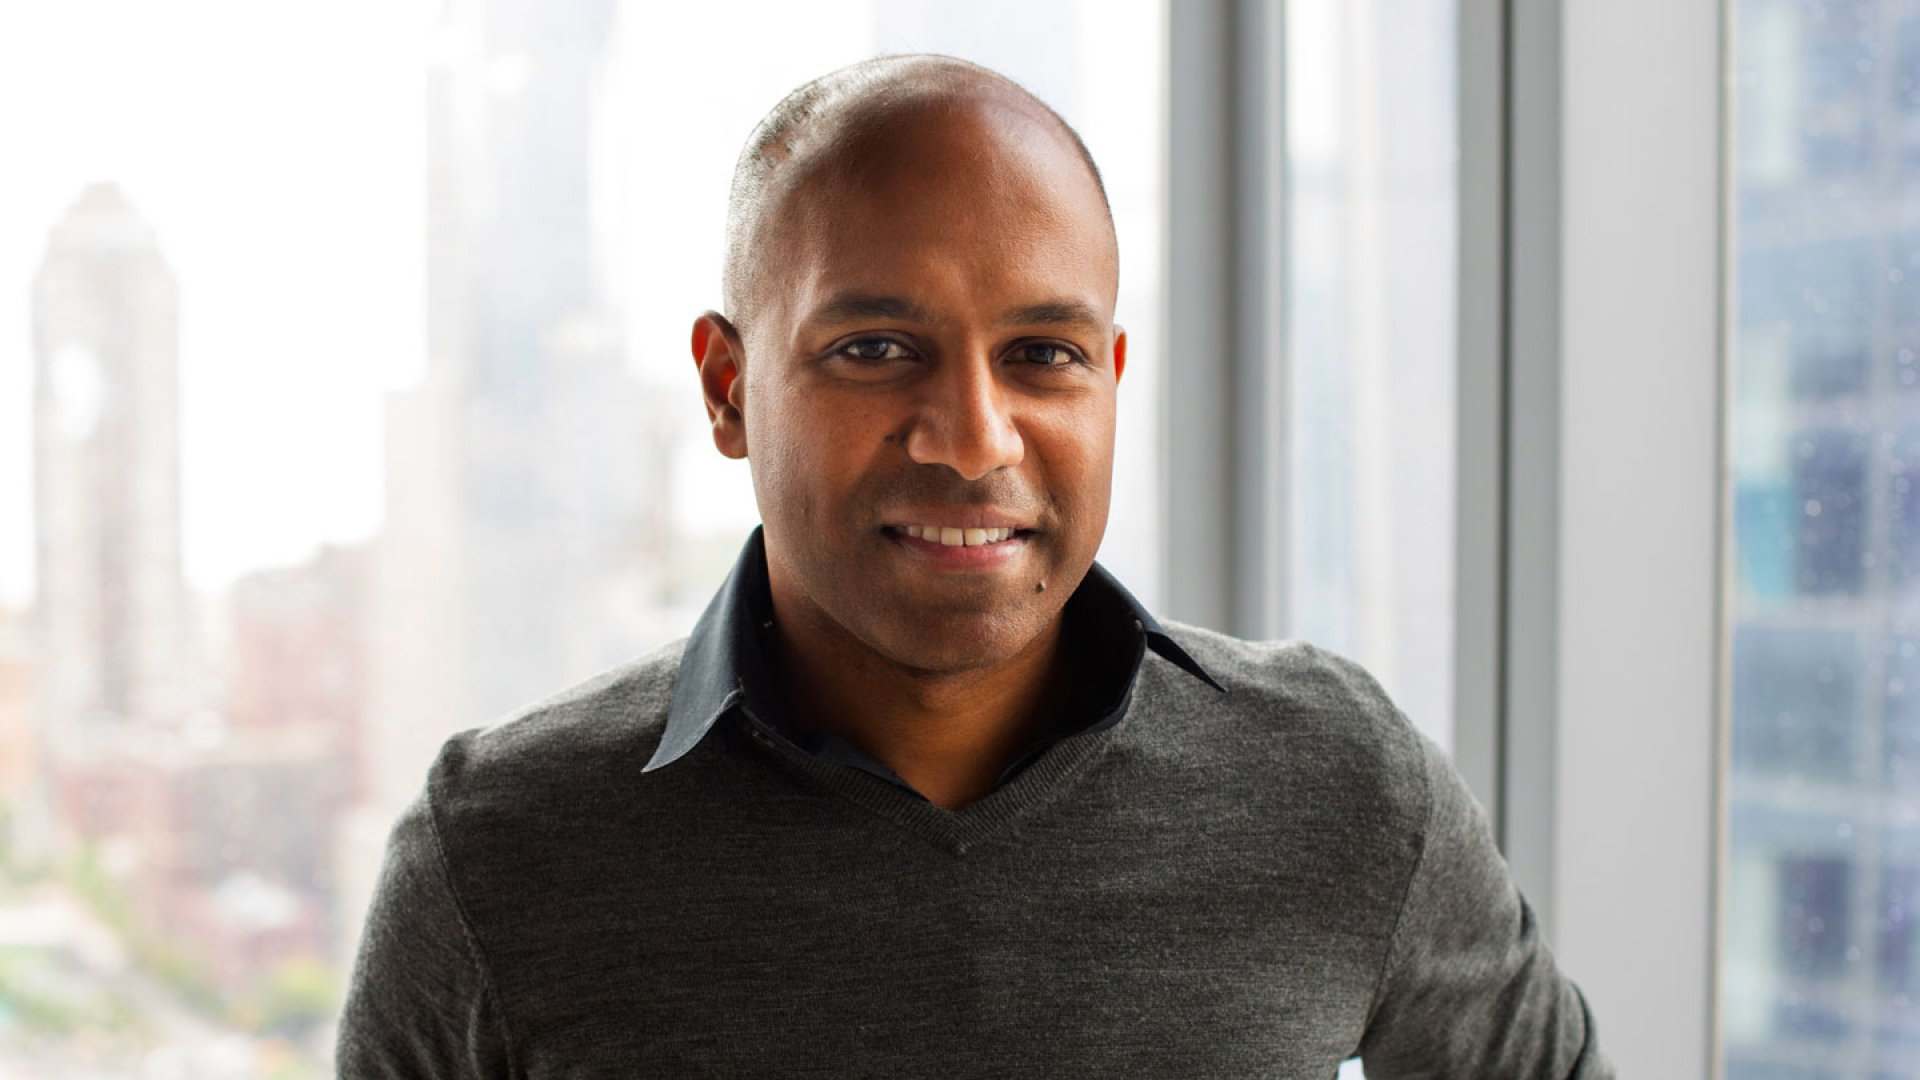 How This CEO Raised $105 Million Without a Single PowerPoint Presentation